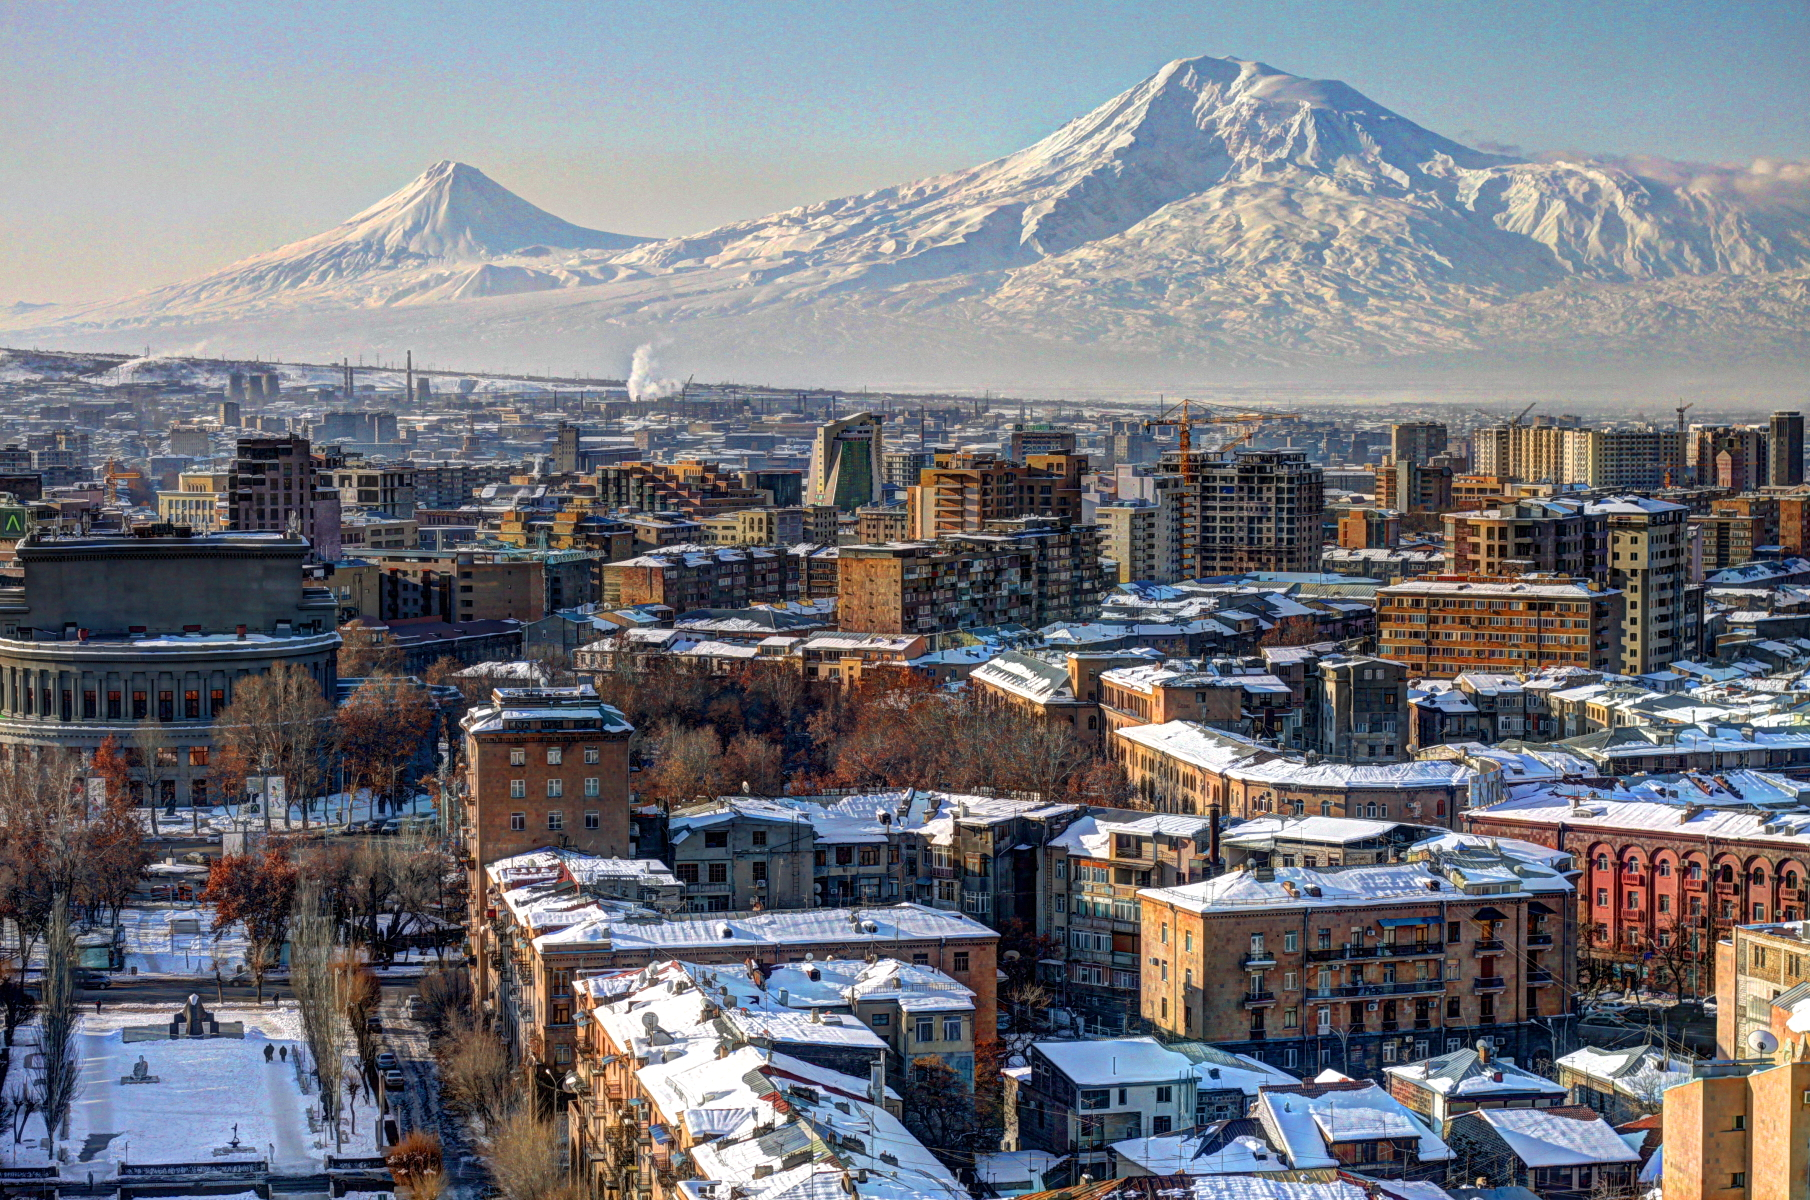 http://upload.wikimedia.org/wikipedia/commons/4/48/Yerevan_2012_February.JPG